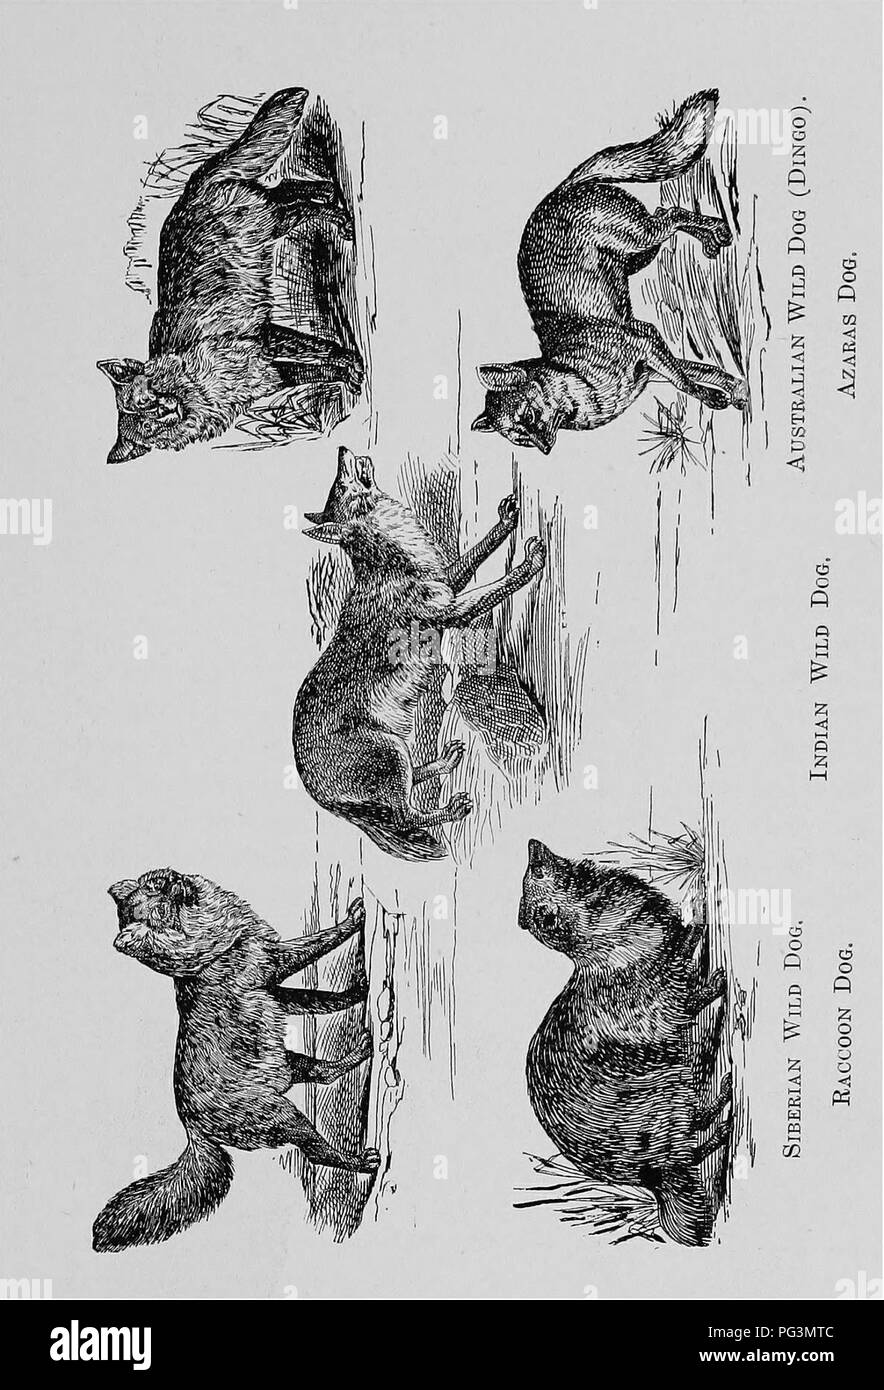 . The fur traders and fur bearing animals. Fur trade; Fur-bearing animals. Wild Dogs. 155. Please note that these images are extracted from scanned page images that may have been digitally enhanced for readability - coloration and appearance of these illustrations may not perfectly resemble the original work.. Petersen, Marcus, 1854-. Buffalo, N. Y. , Hammond Press Stock Photo